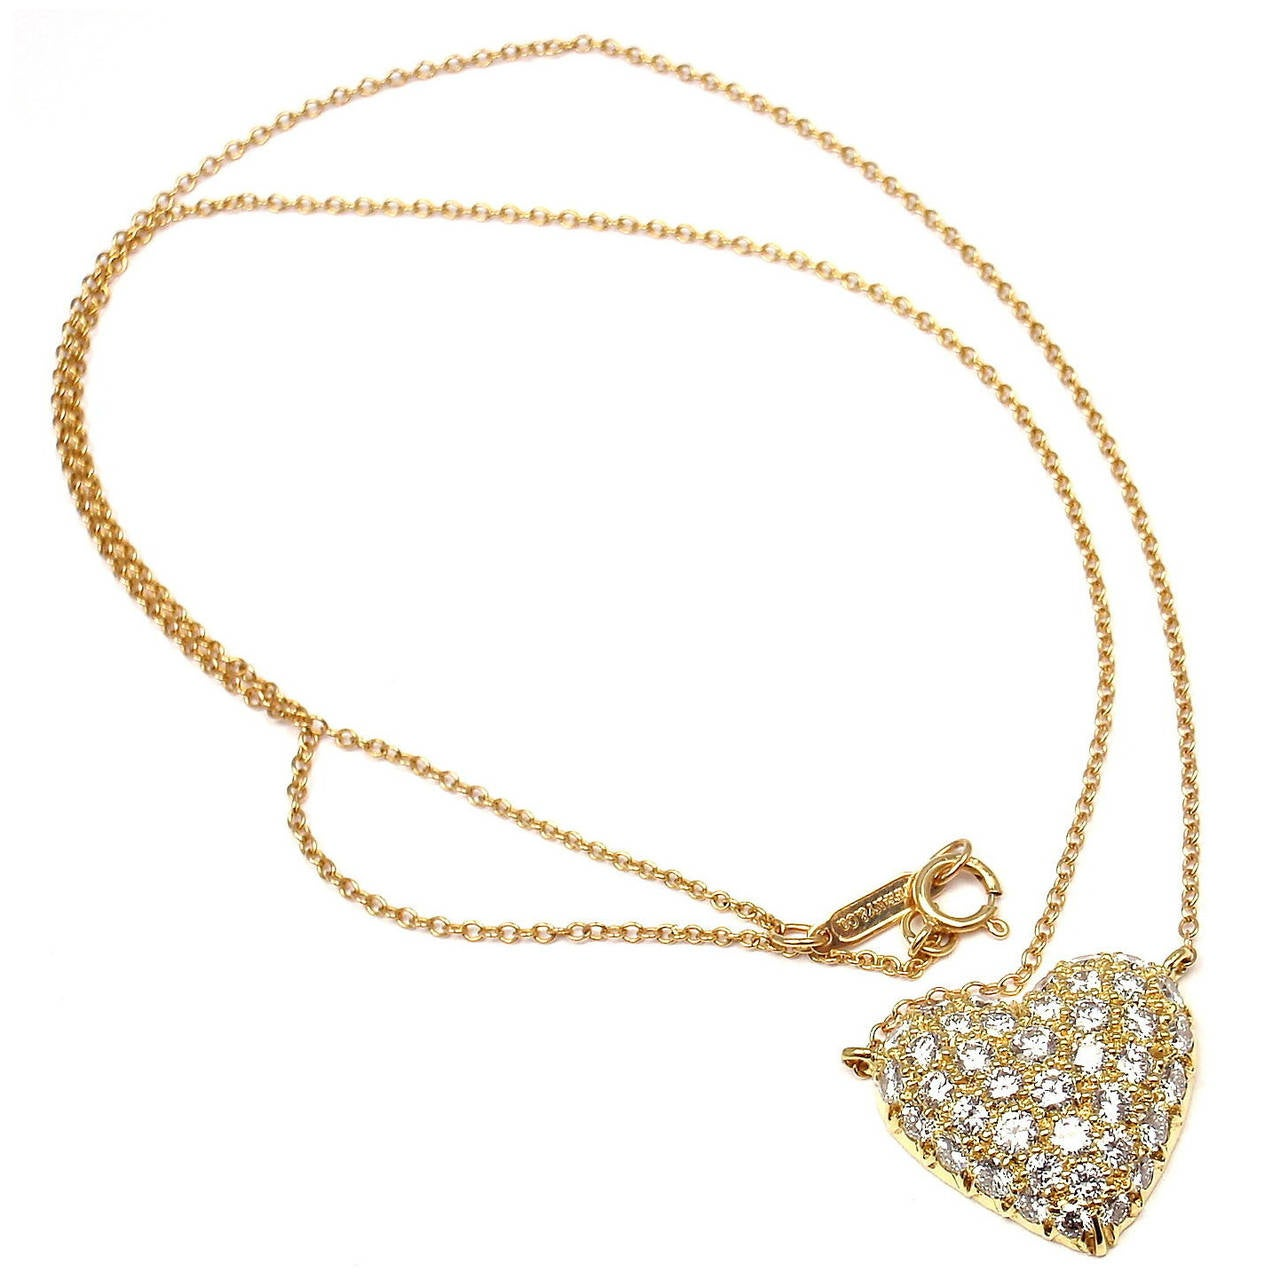 Tiffany and co pave diamond gold puffed heart pendant necklace at pave diamond gold puffed heart pendant necklace 1 mozeypictures Choice Image